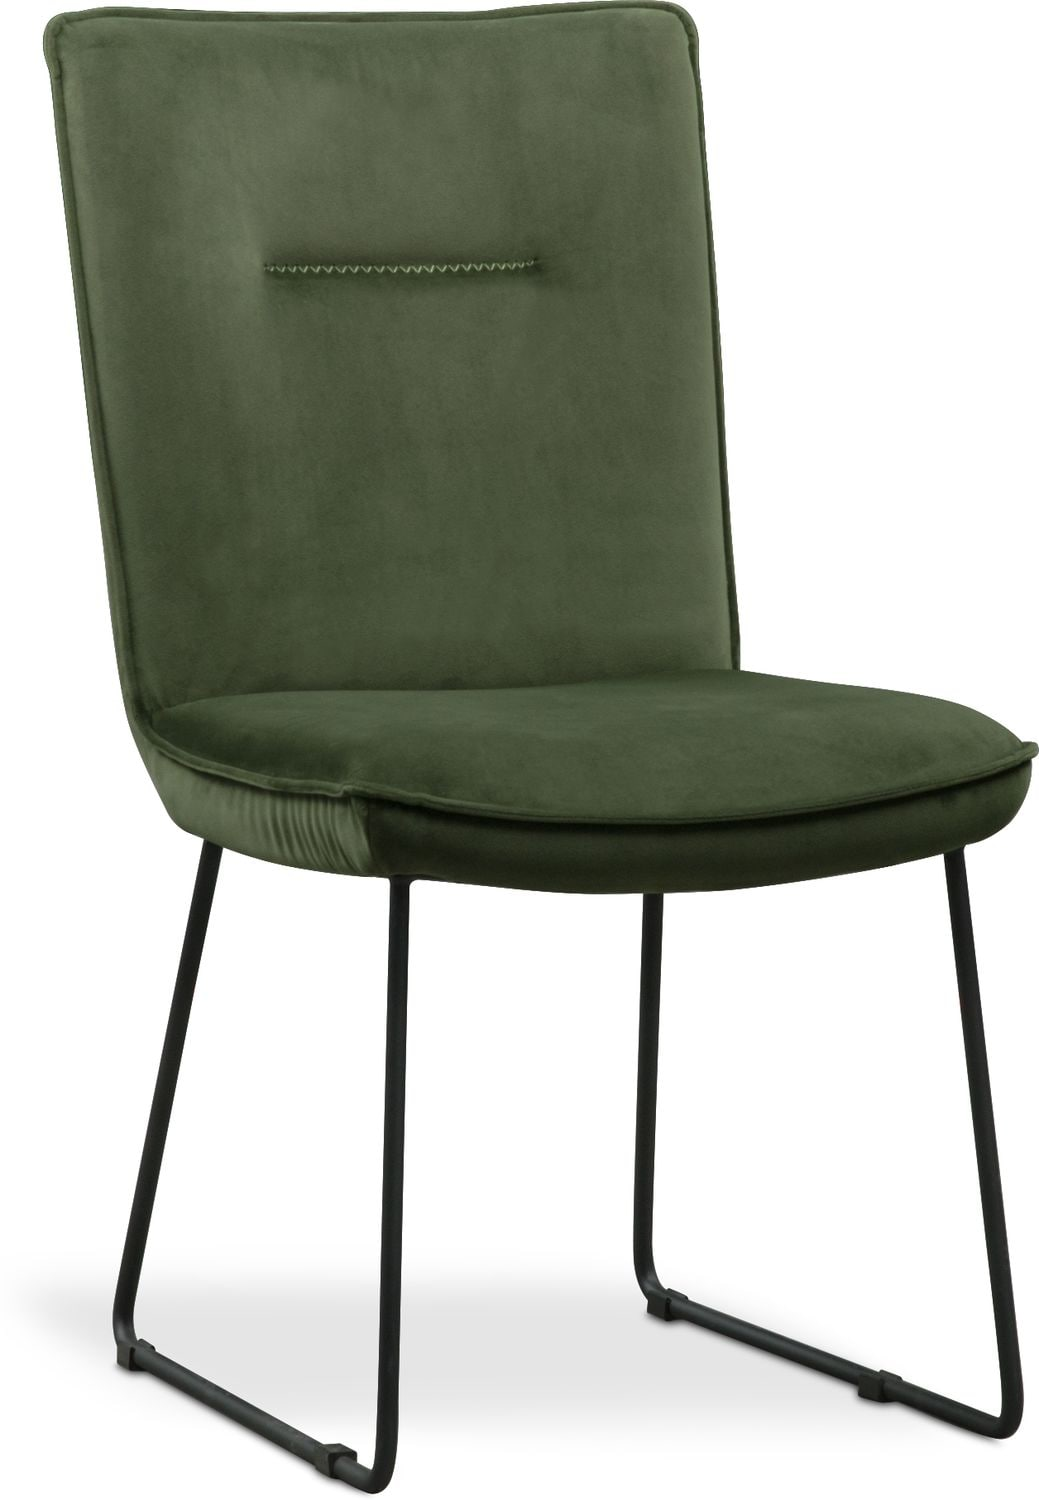 green upholstered dining chairs ford explorer with captain portland table and 4 side